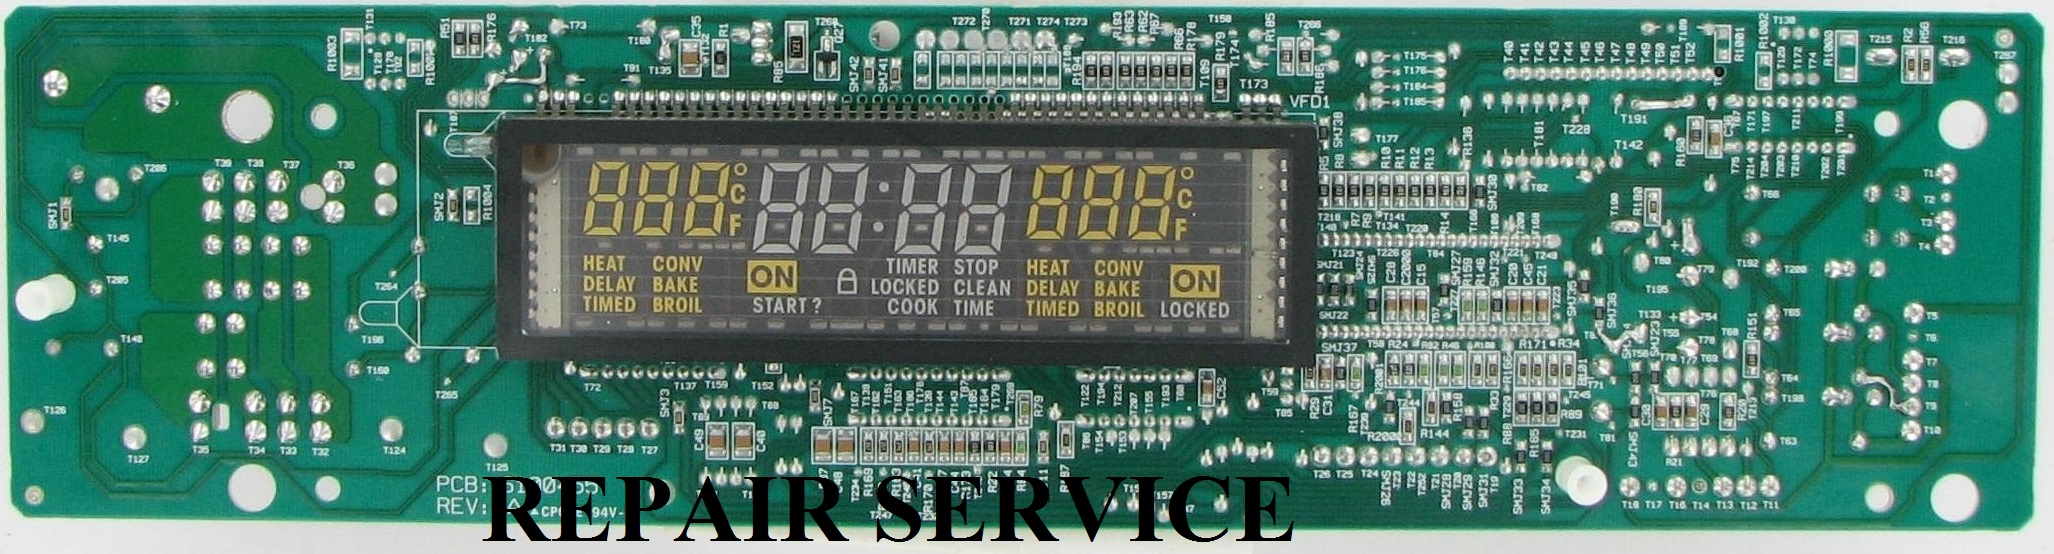 Repair Service For Whirlpool Oven / Range Control Board 4453664